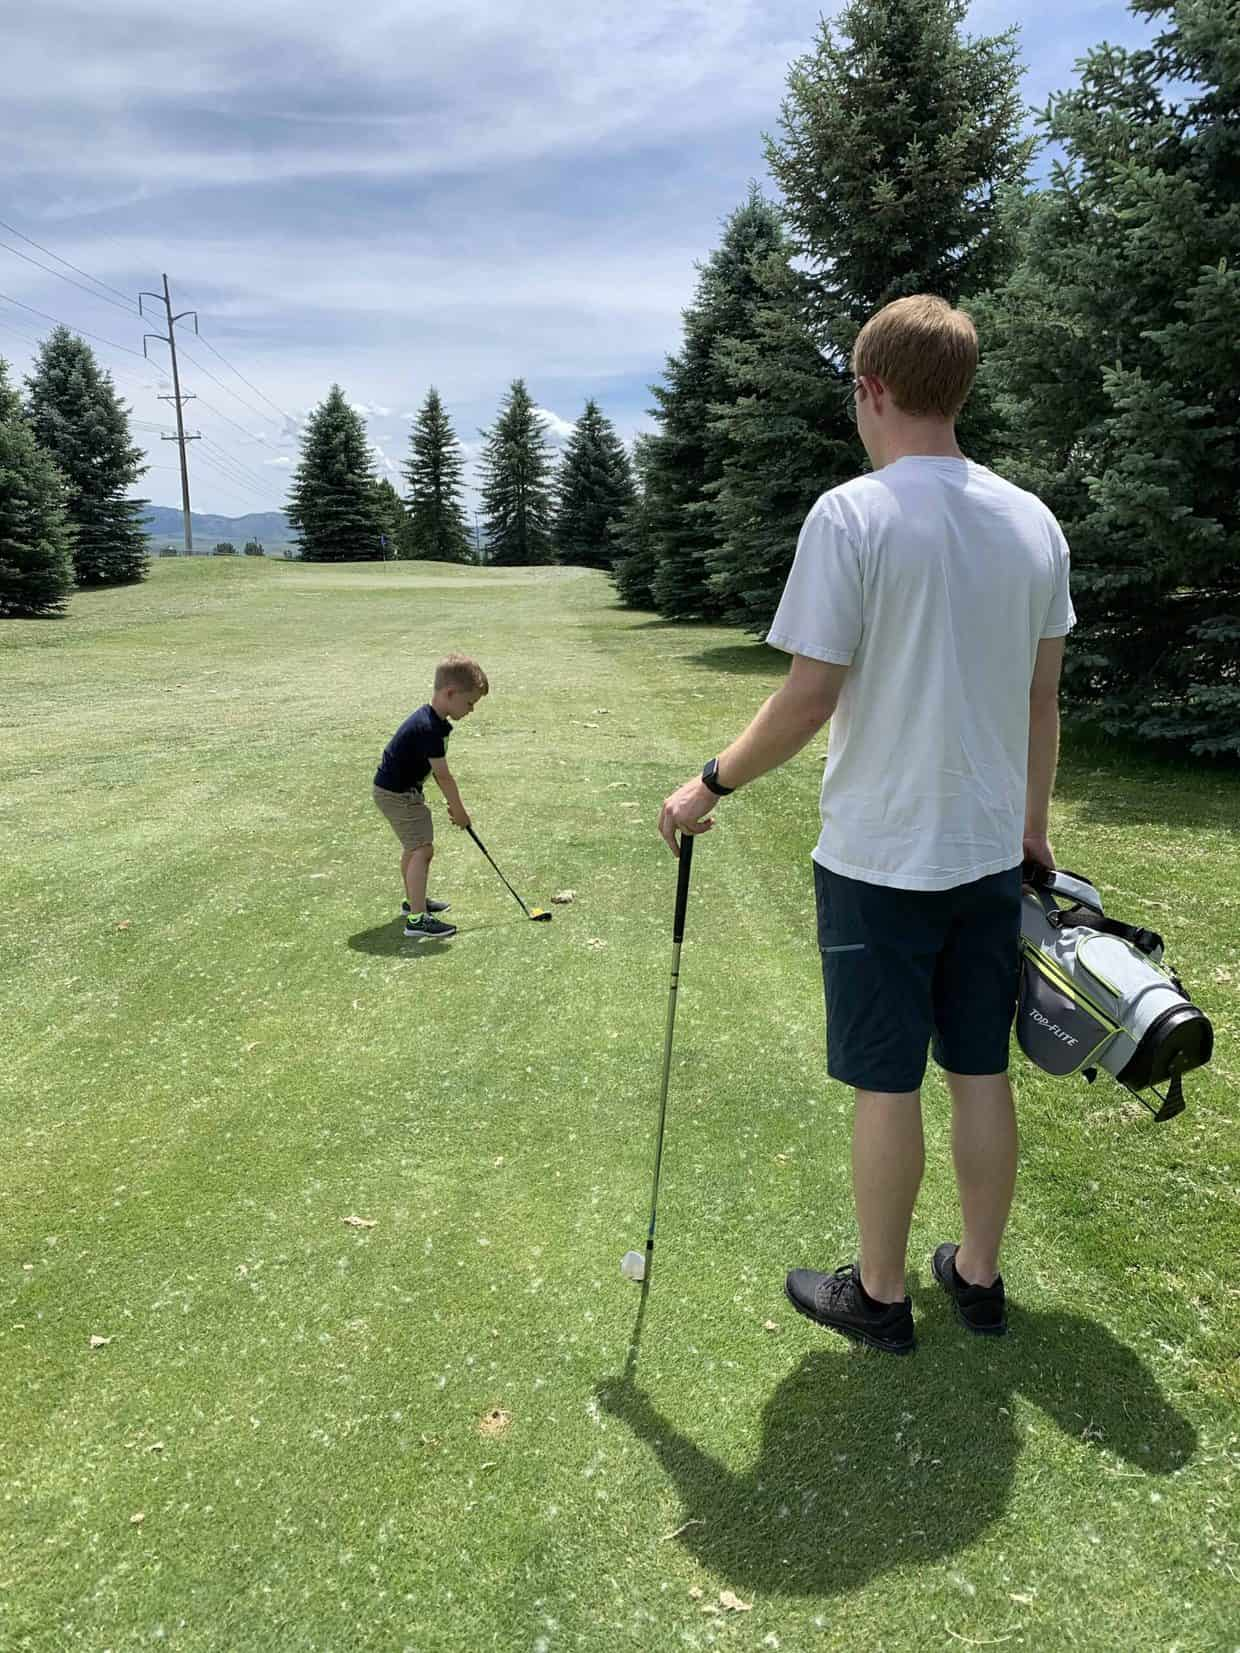 A young boy golfing.